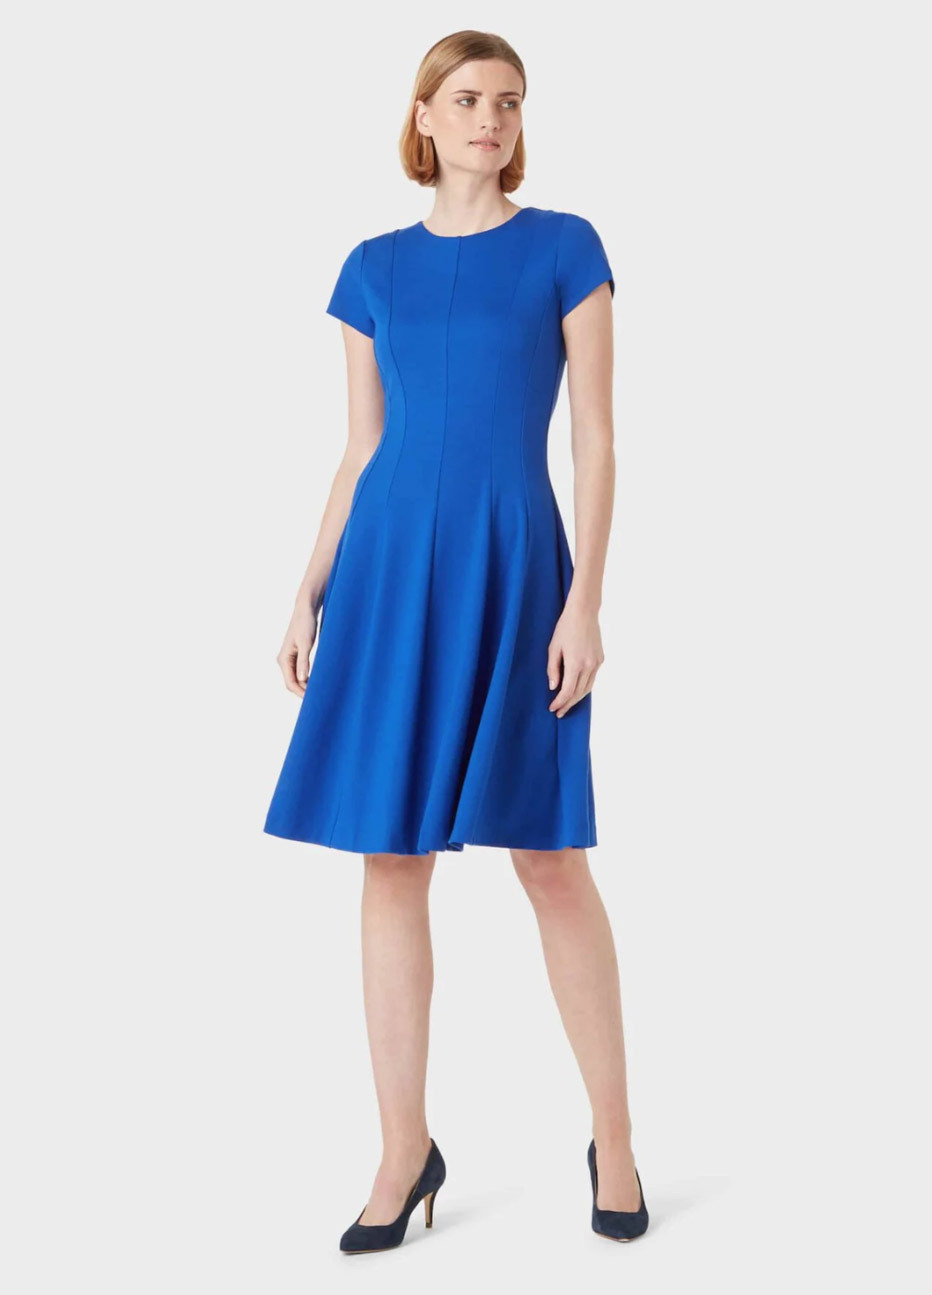 Blue fit and flare work dress with black court shoes by Hobbs.